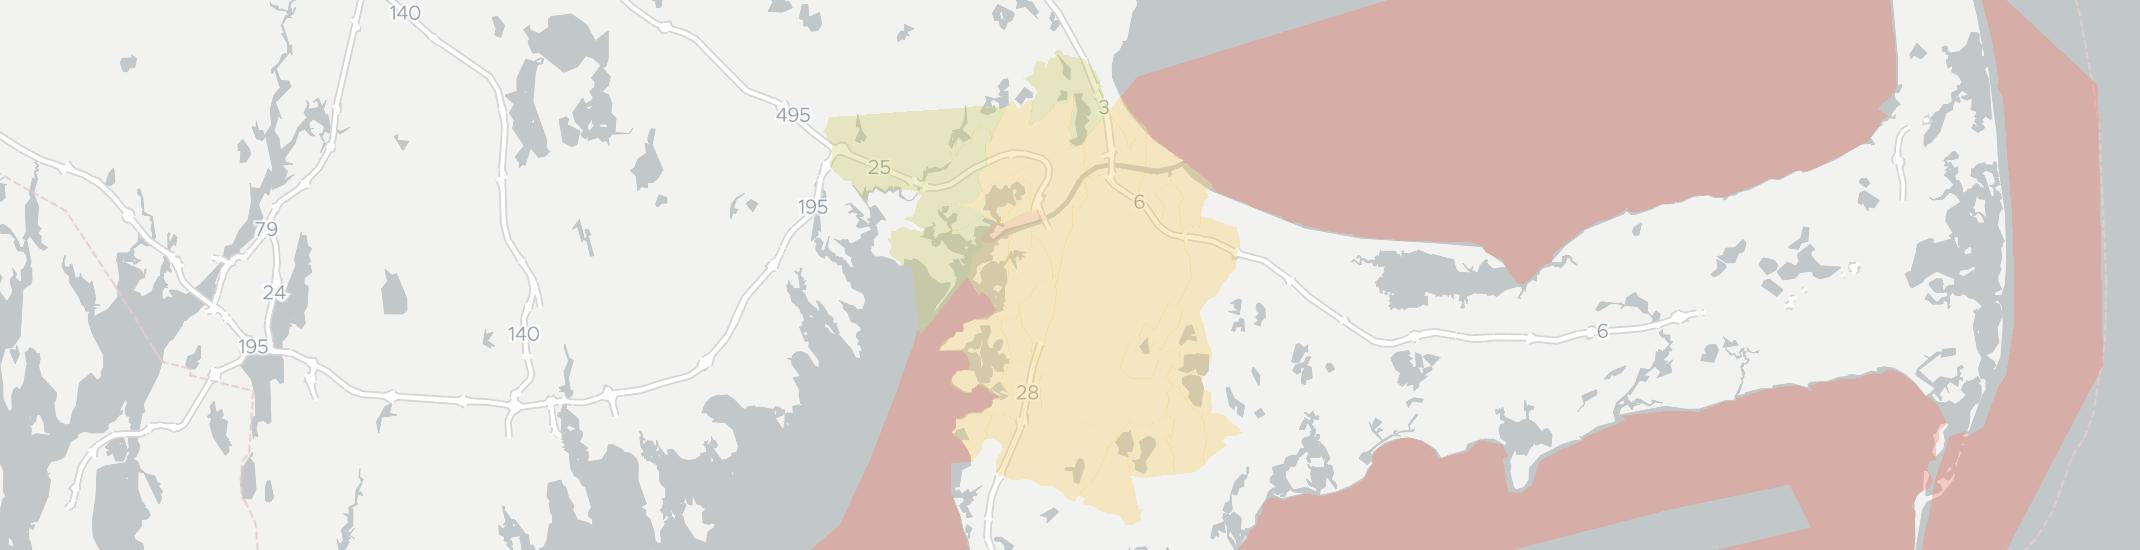 Buzzards Bay Internet Competition Map. Click for interactive map.